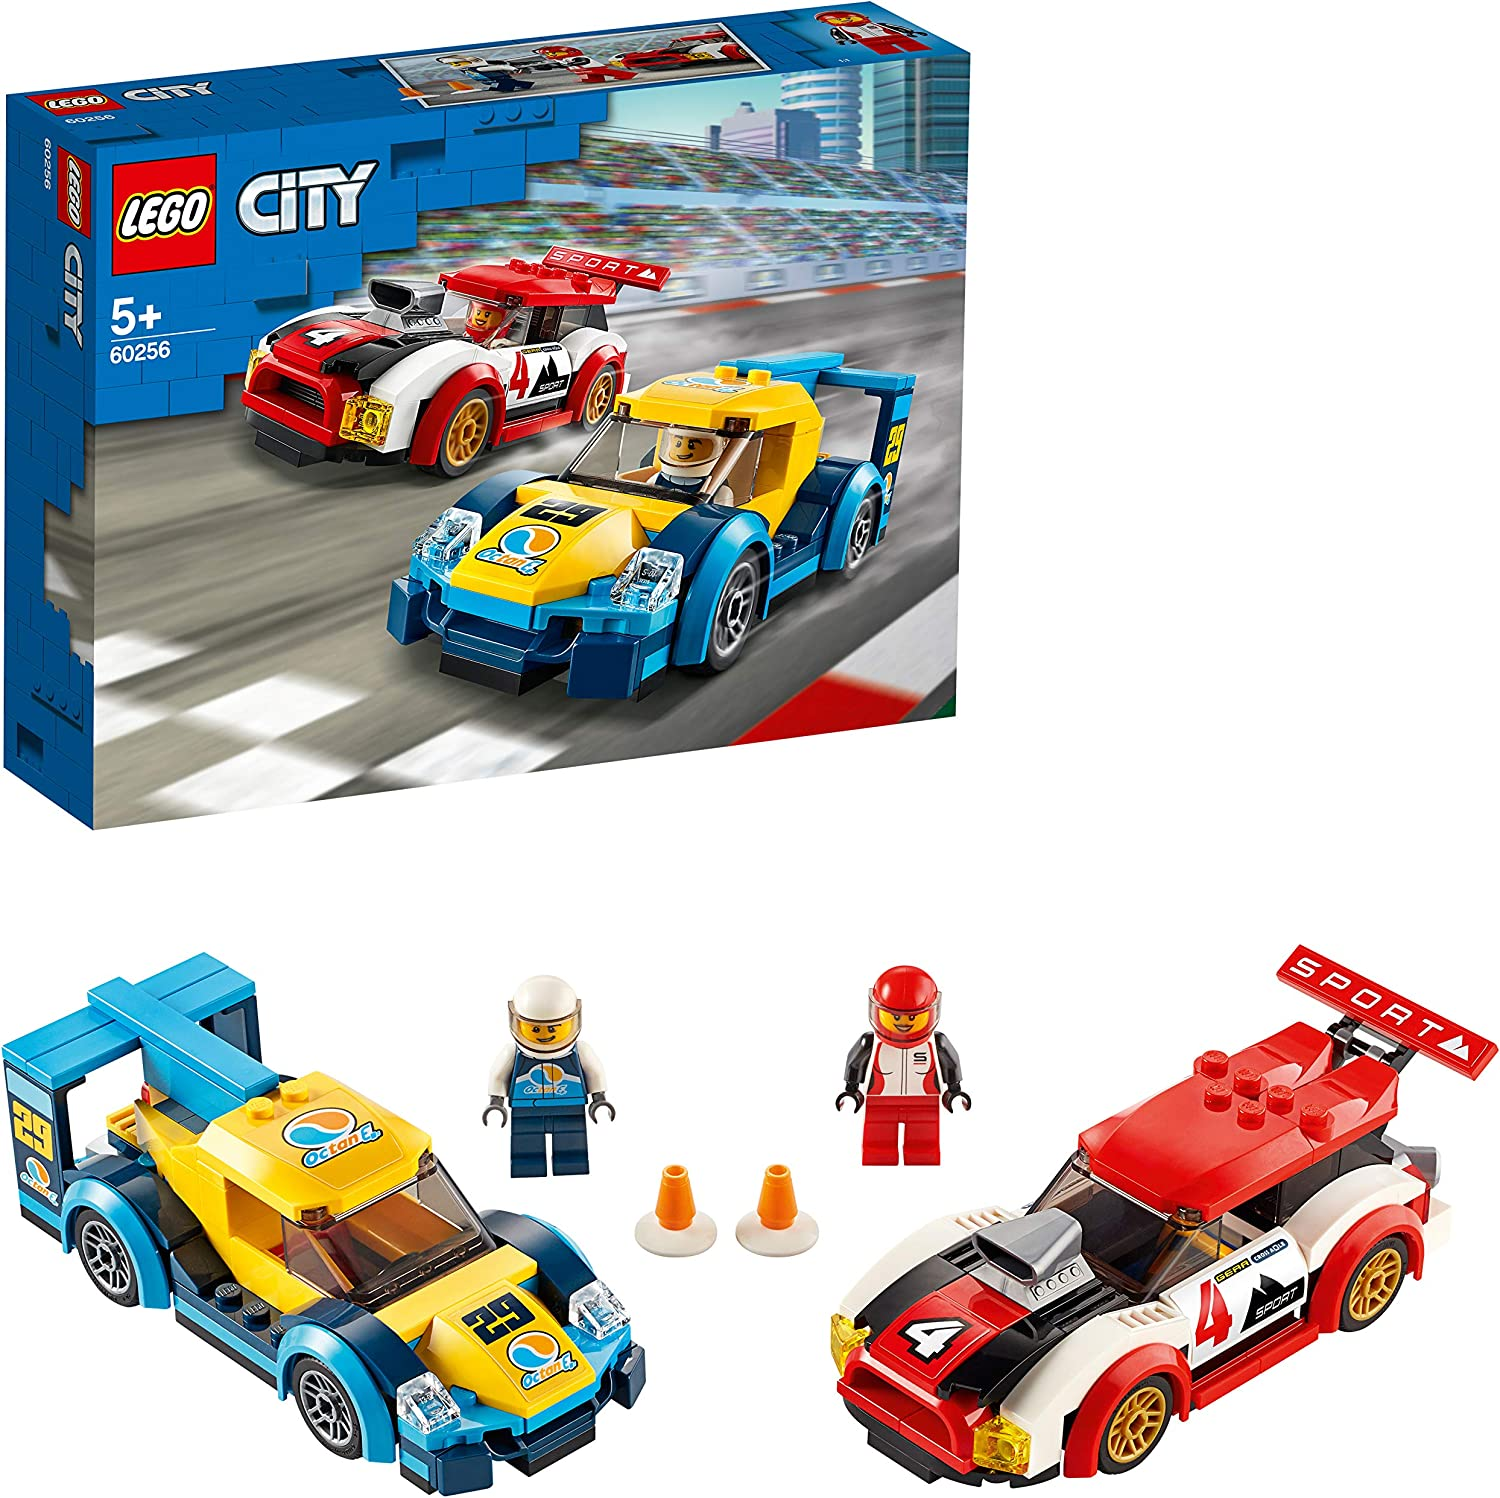 this is an image of a Lego city racing car set with race driver minifigures